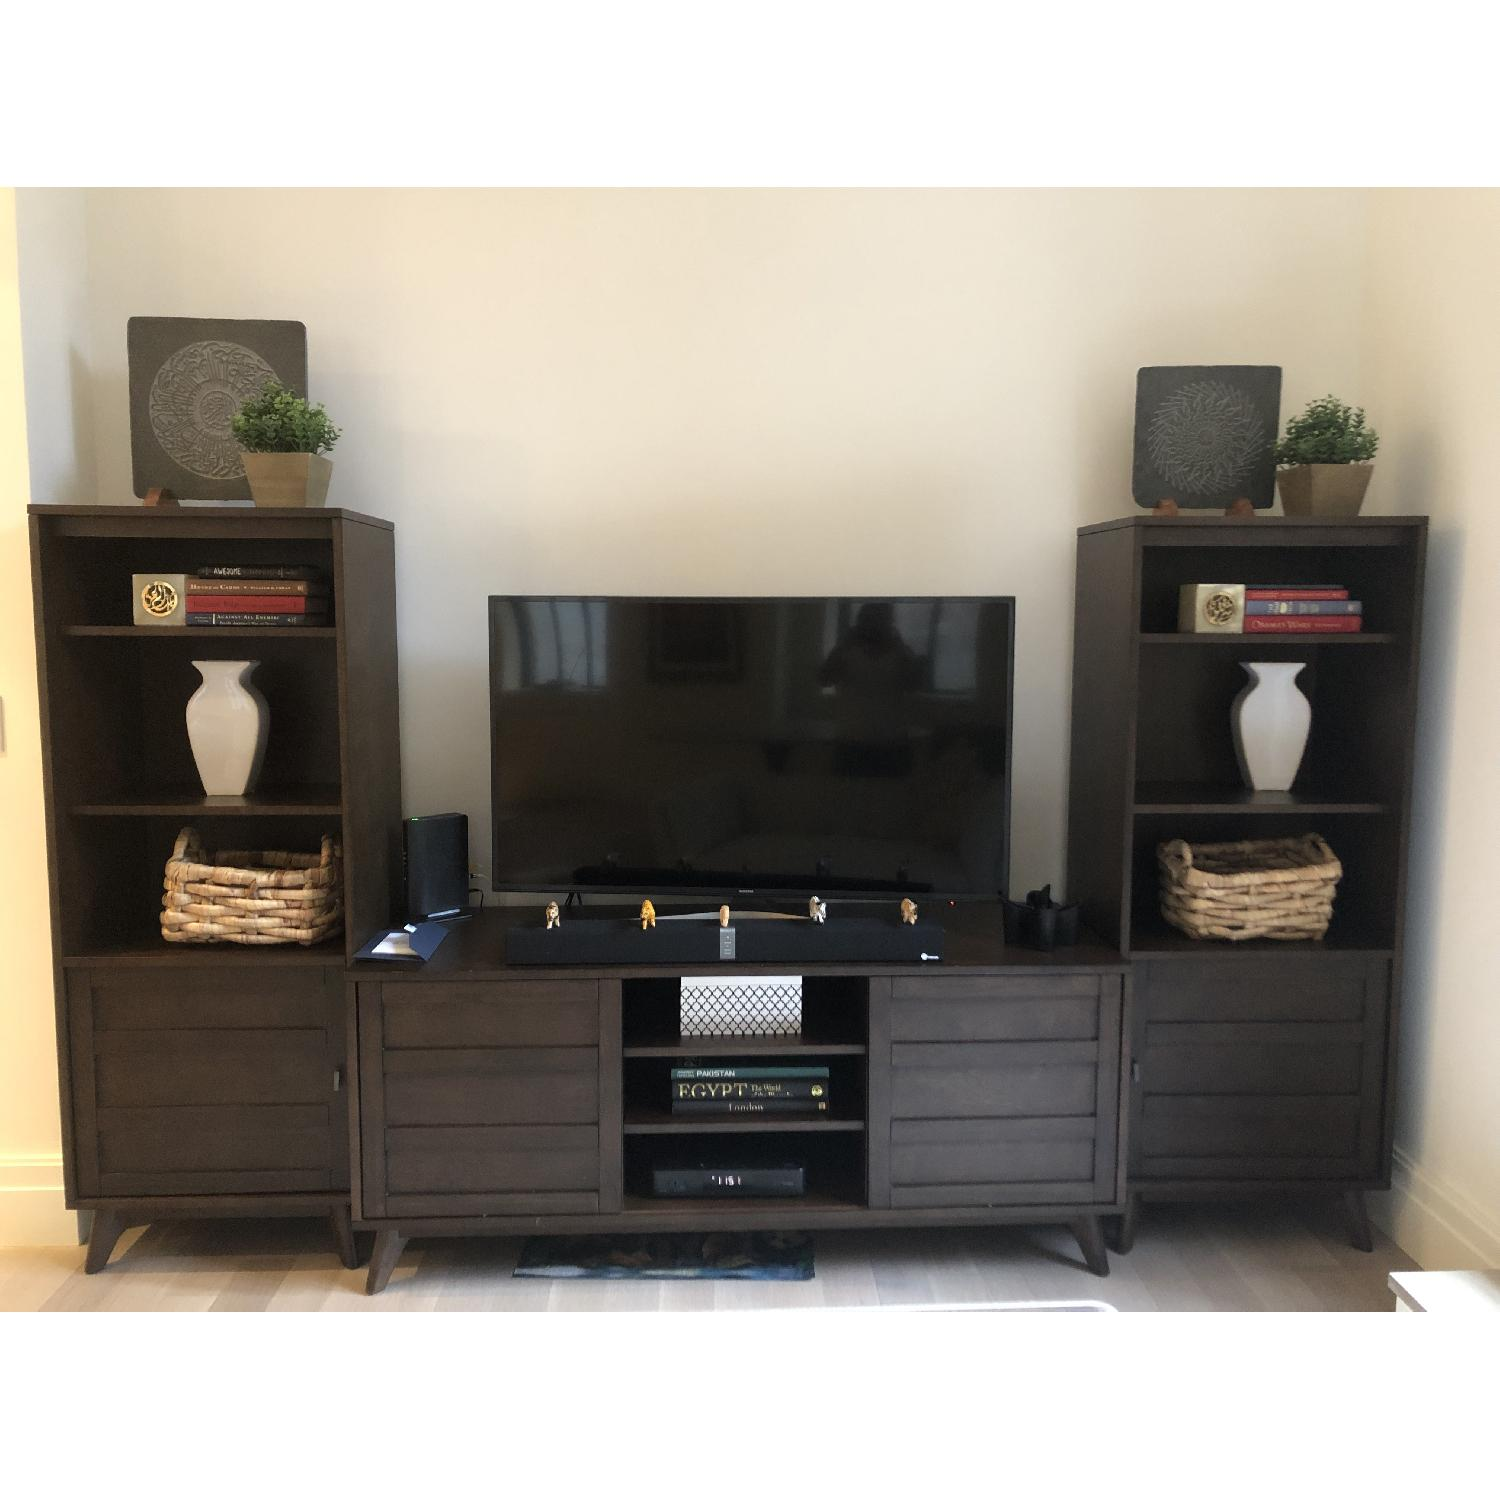 Crate & Barrel HD Media Console w/ 2 Towers-0